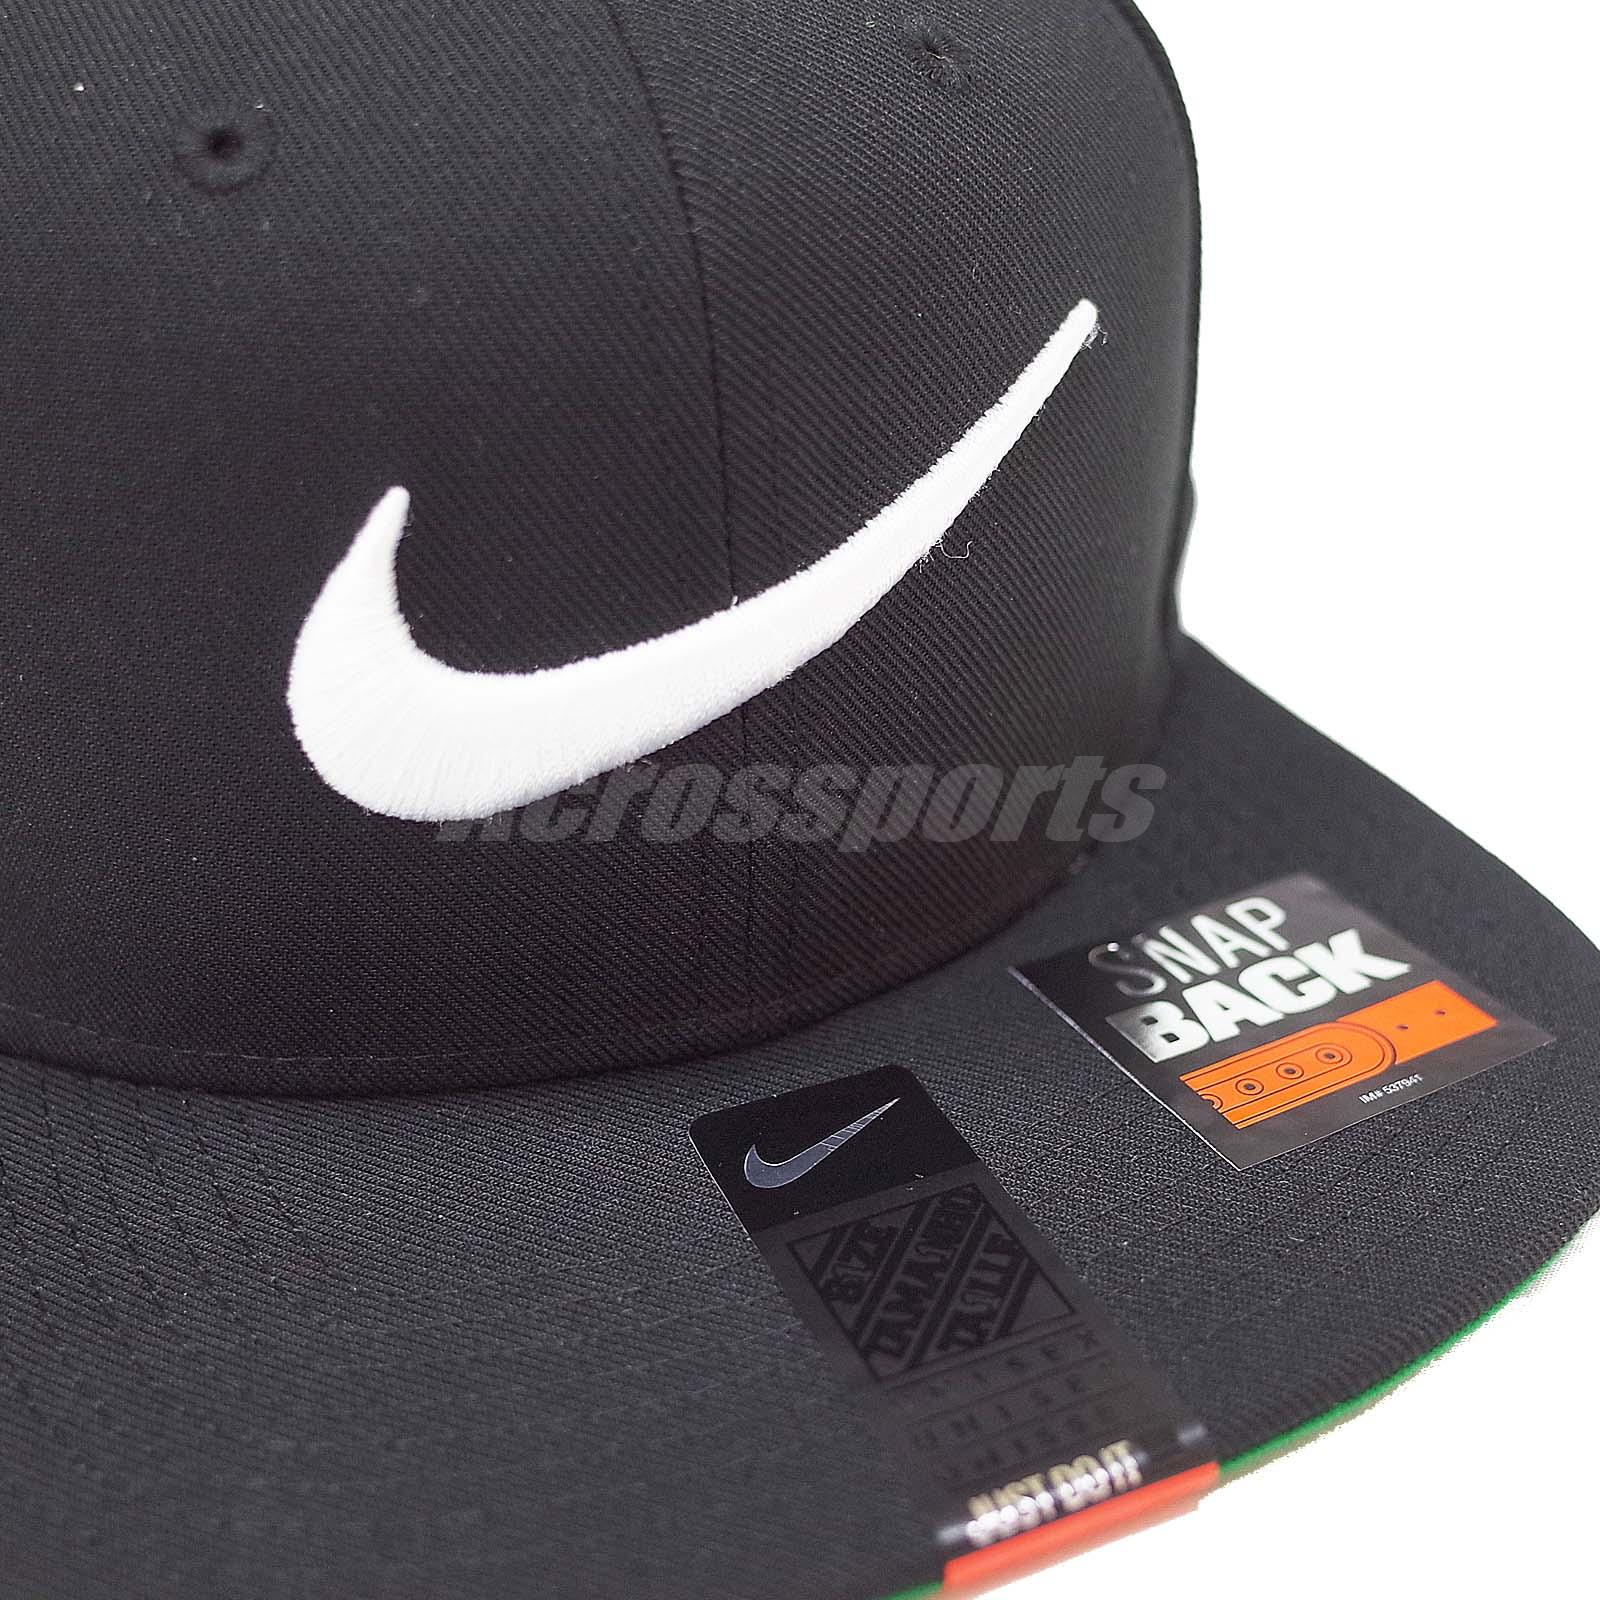 e712dd2ebd2 Nike Swoosh Pro Black White Embroidery Mens Snapback Adjustable Hat ...